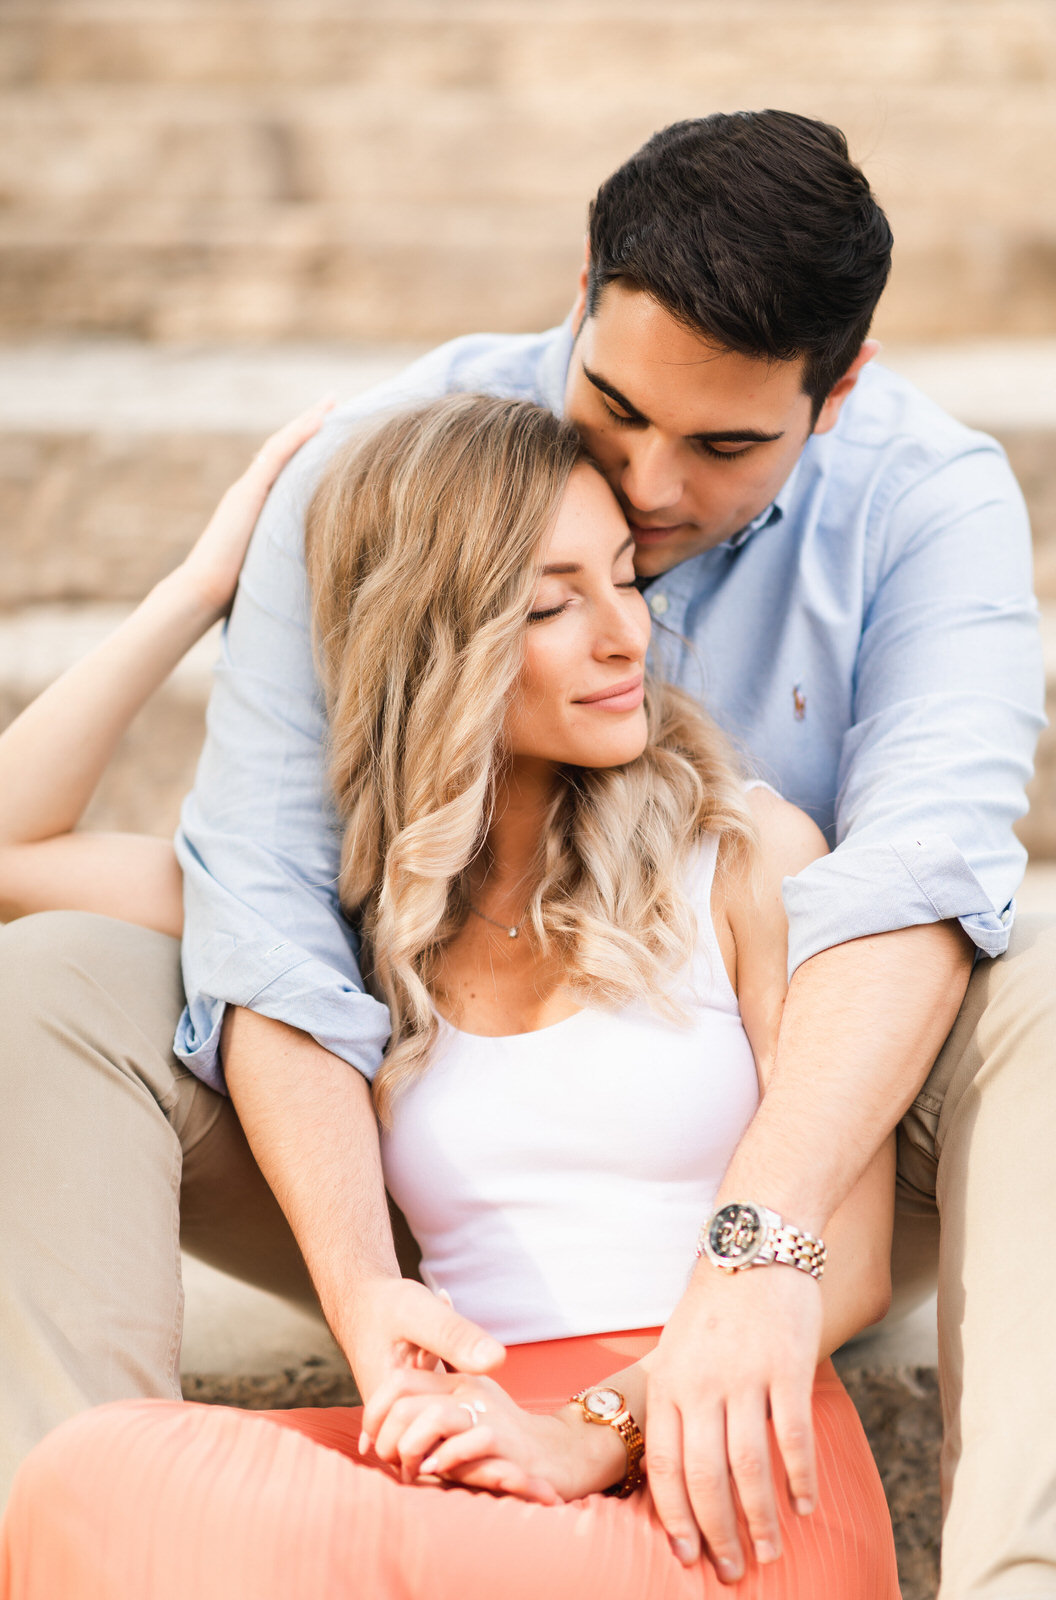 niagara-on-the-lake-engagement-photoshoot-1